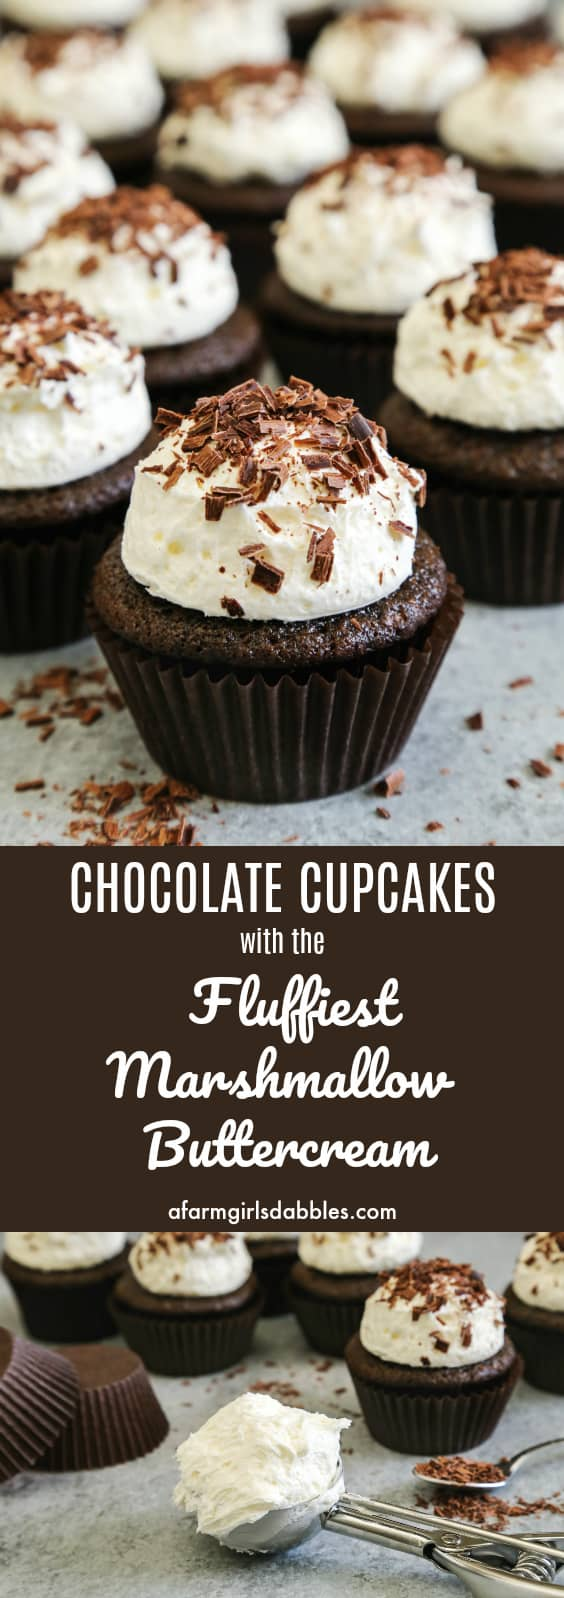 Pinterest image of frosted chocolate cupcakes